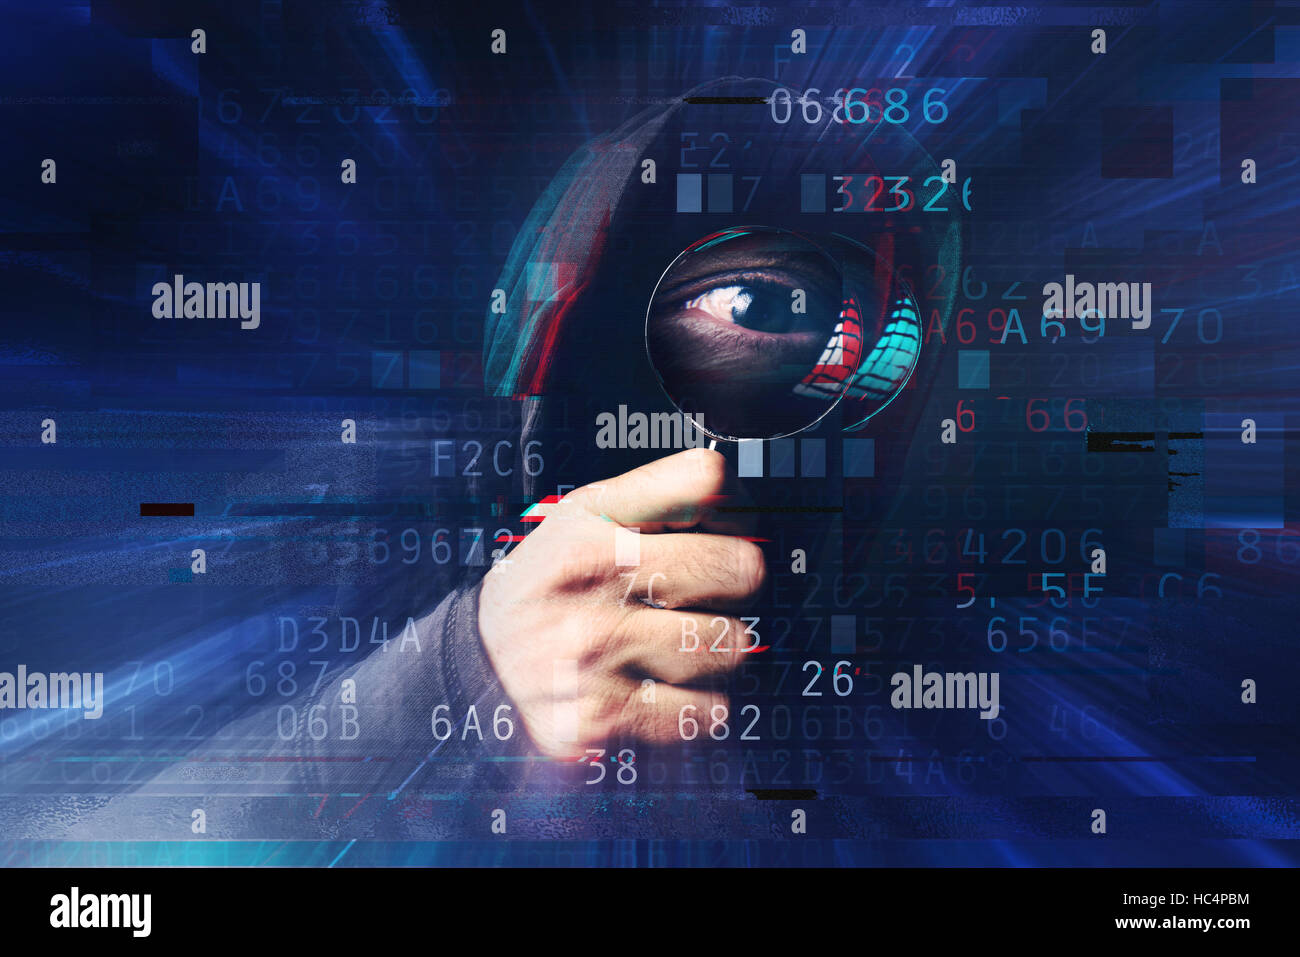 Spyware and ransomware concept with digital glitch effect, spooky hooded hacker with magnifying glass stealing online - Stock Image